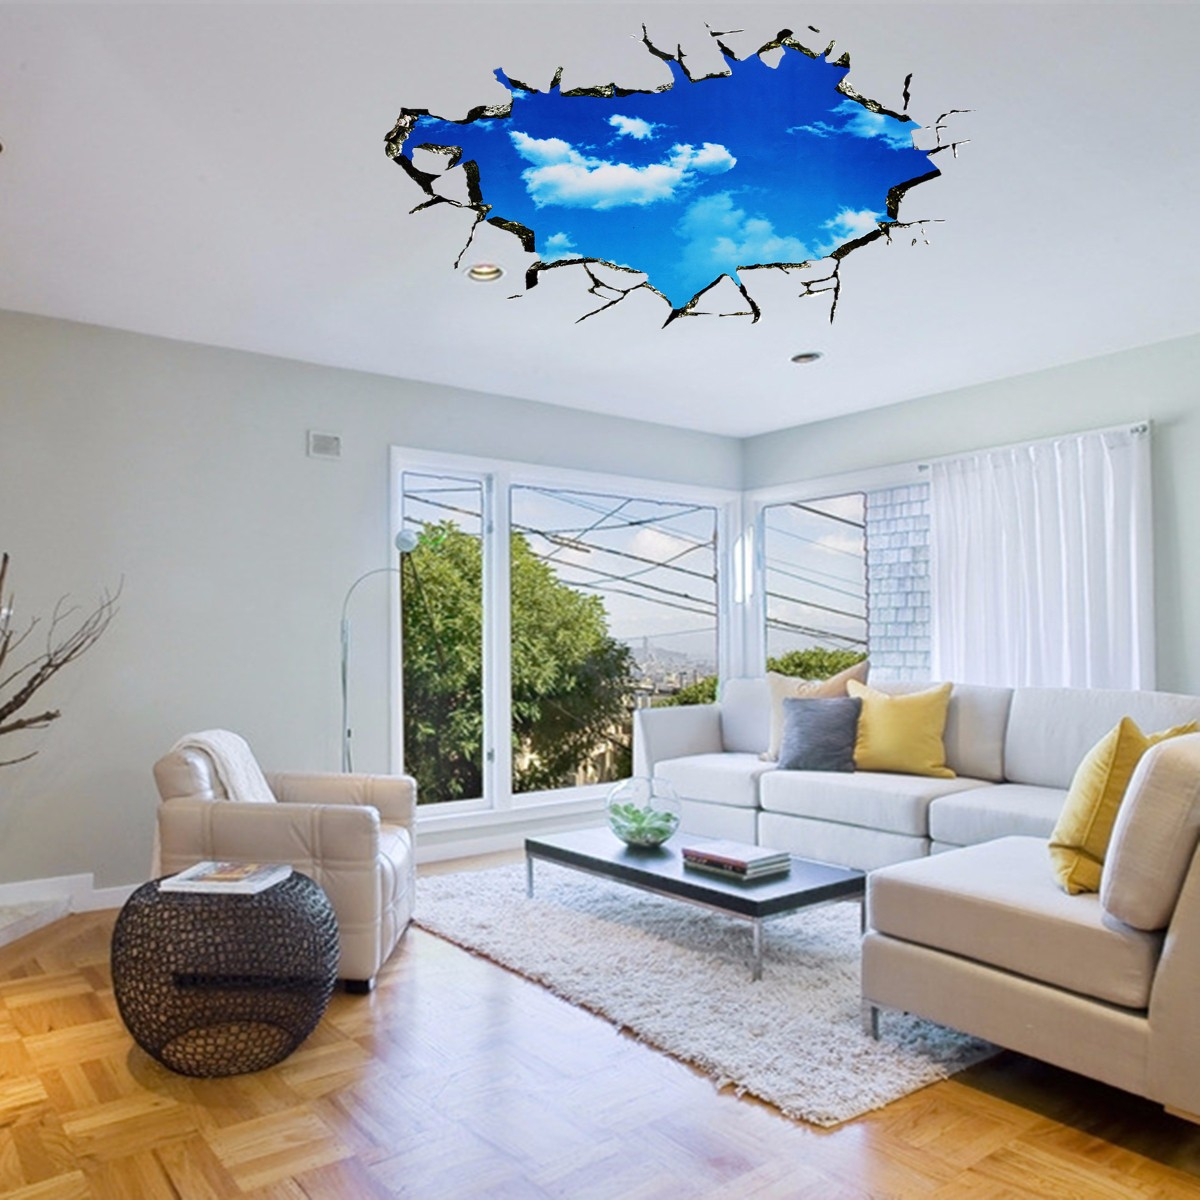 Decoration Murale Design 3d Pag Blue Sky 3d Wall Decals Sticker Ceiling Hole Sticker